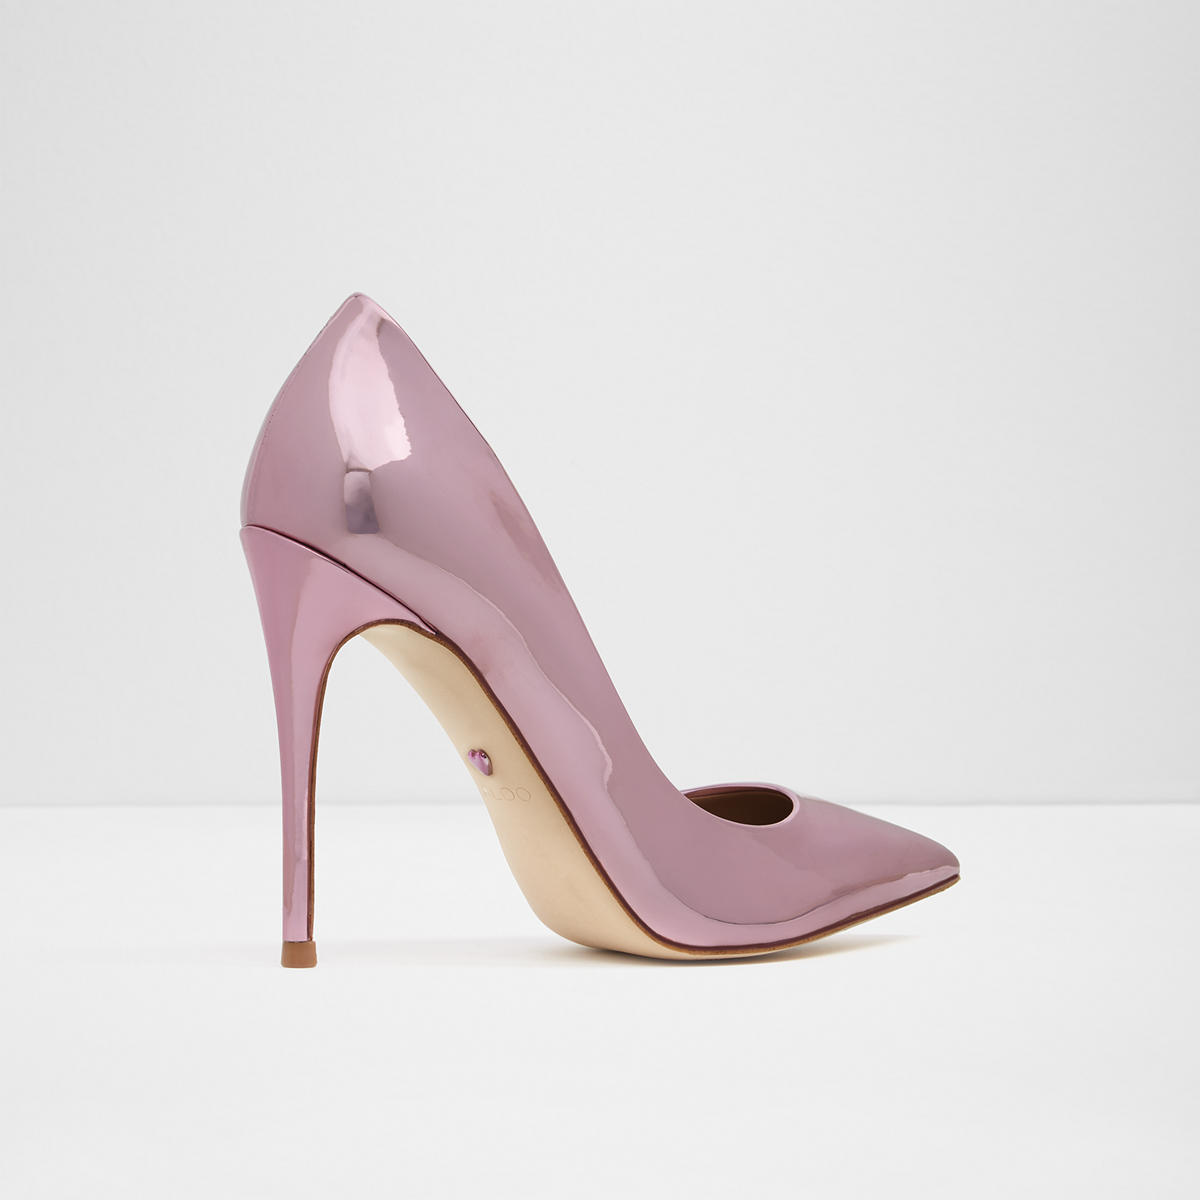 What Is A Narrow Heel On A Women S Shoes